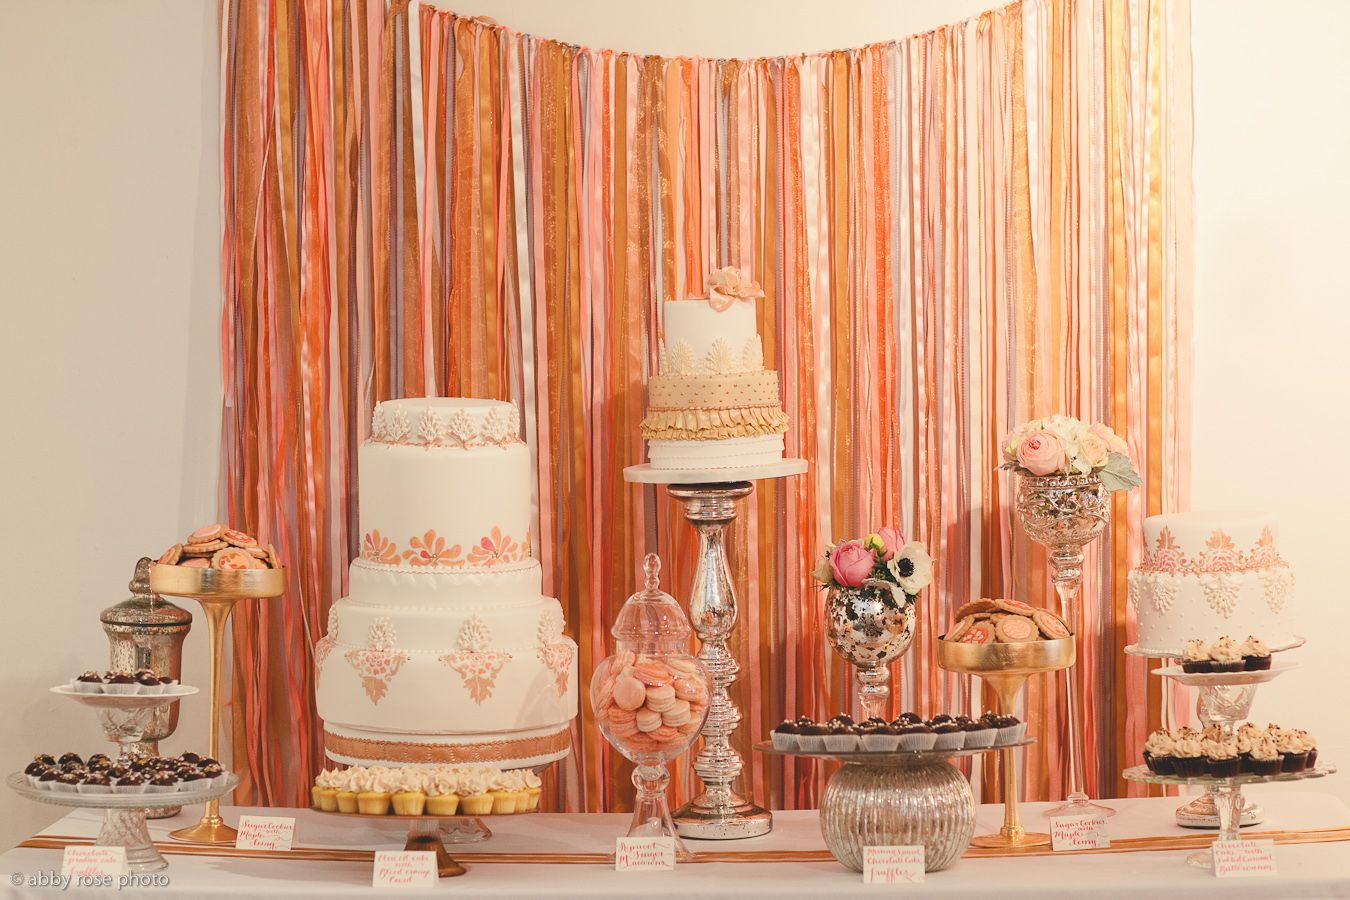 Example of vintage glam inspired dessert table - use of mercury glass mixed with other vintage pieces, not symmetrical, differing heights of stands and florals